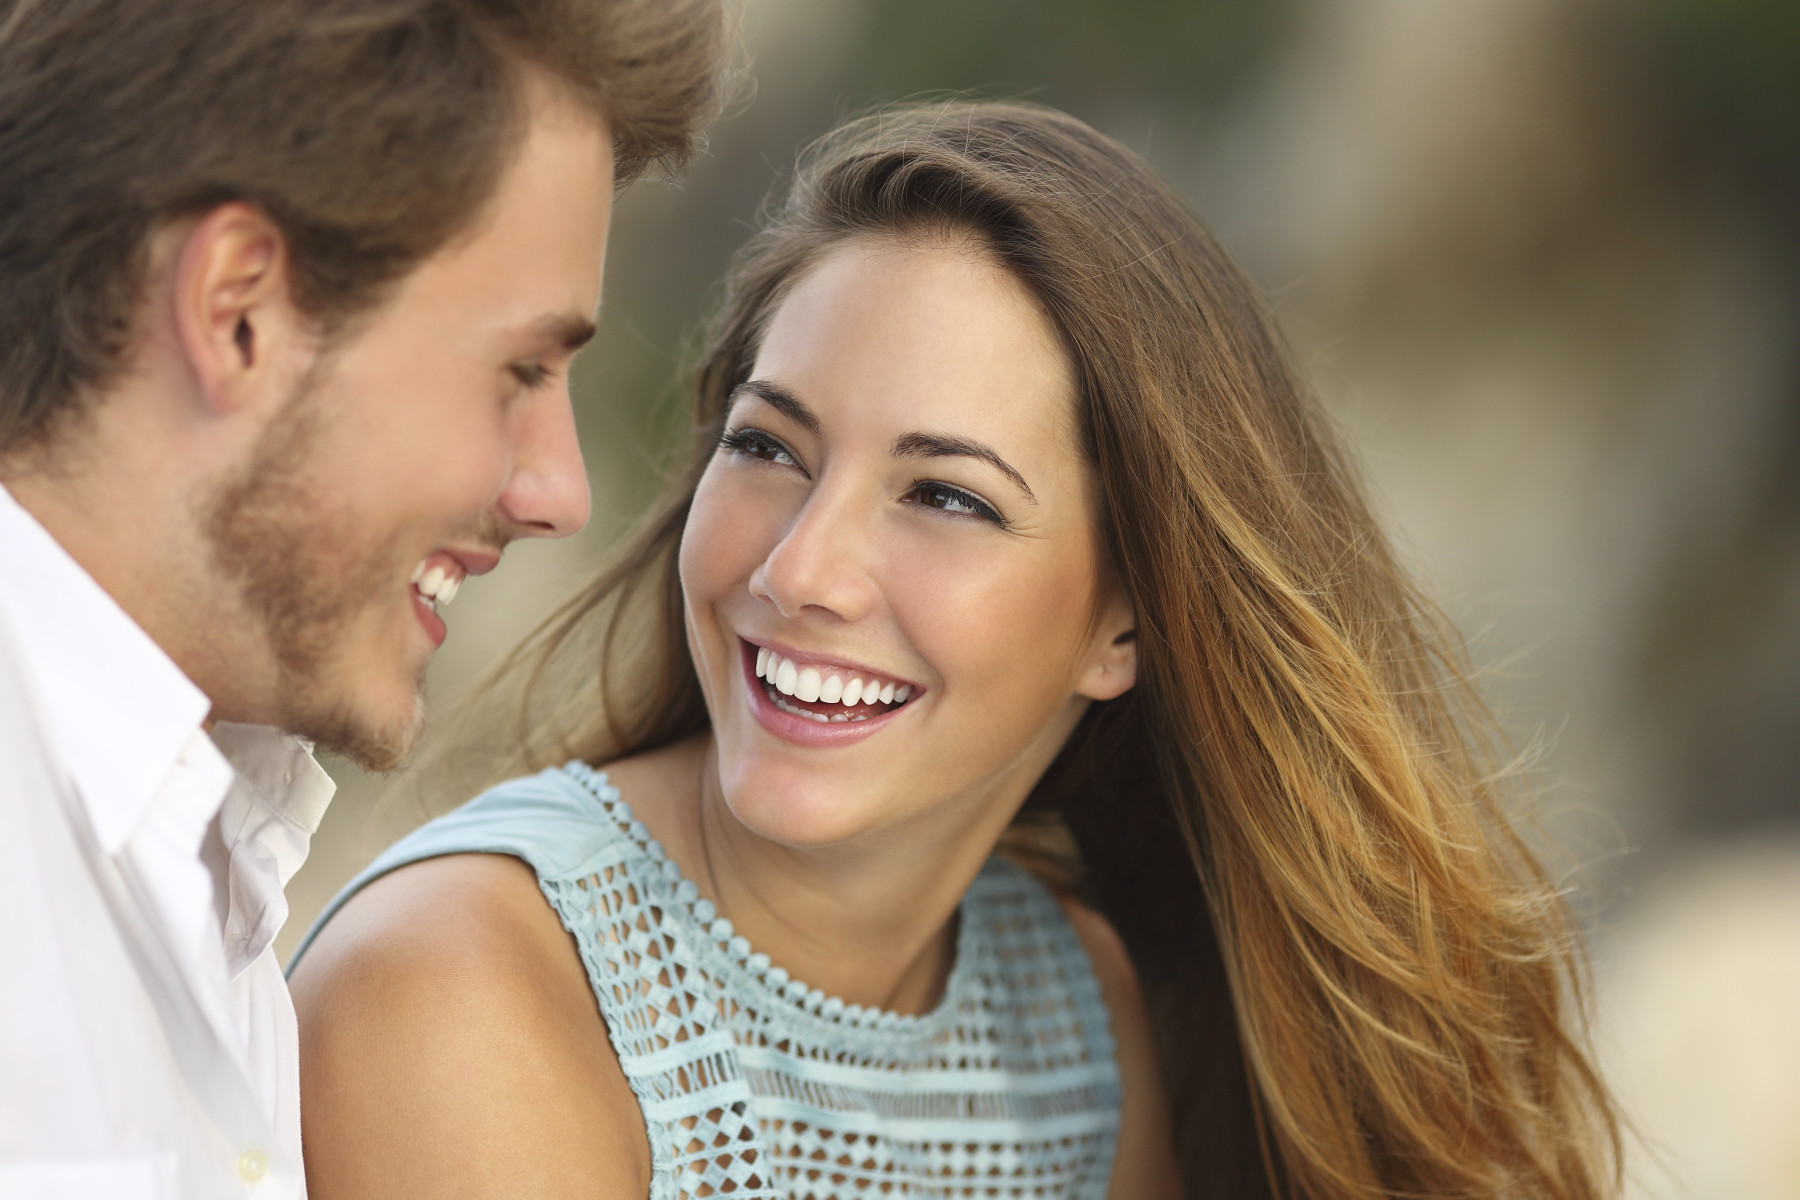 A young couple looking at each other smiling